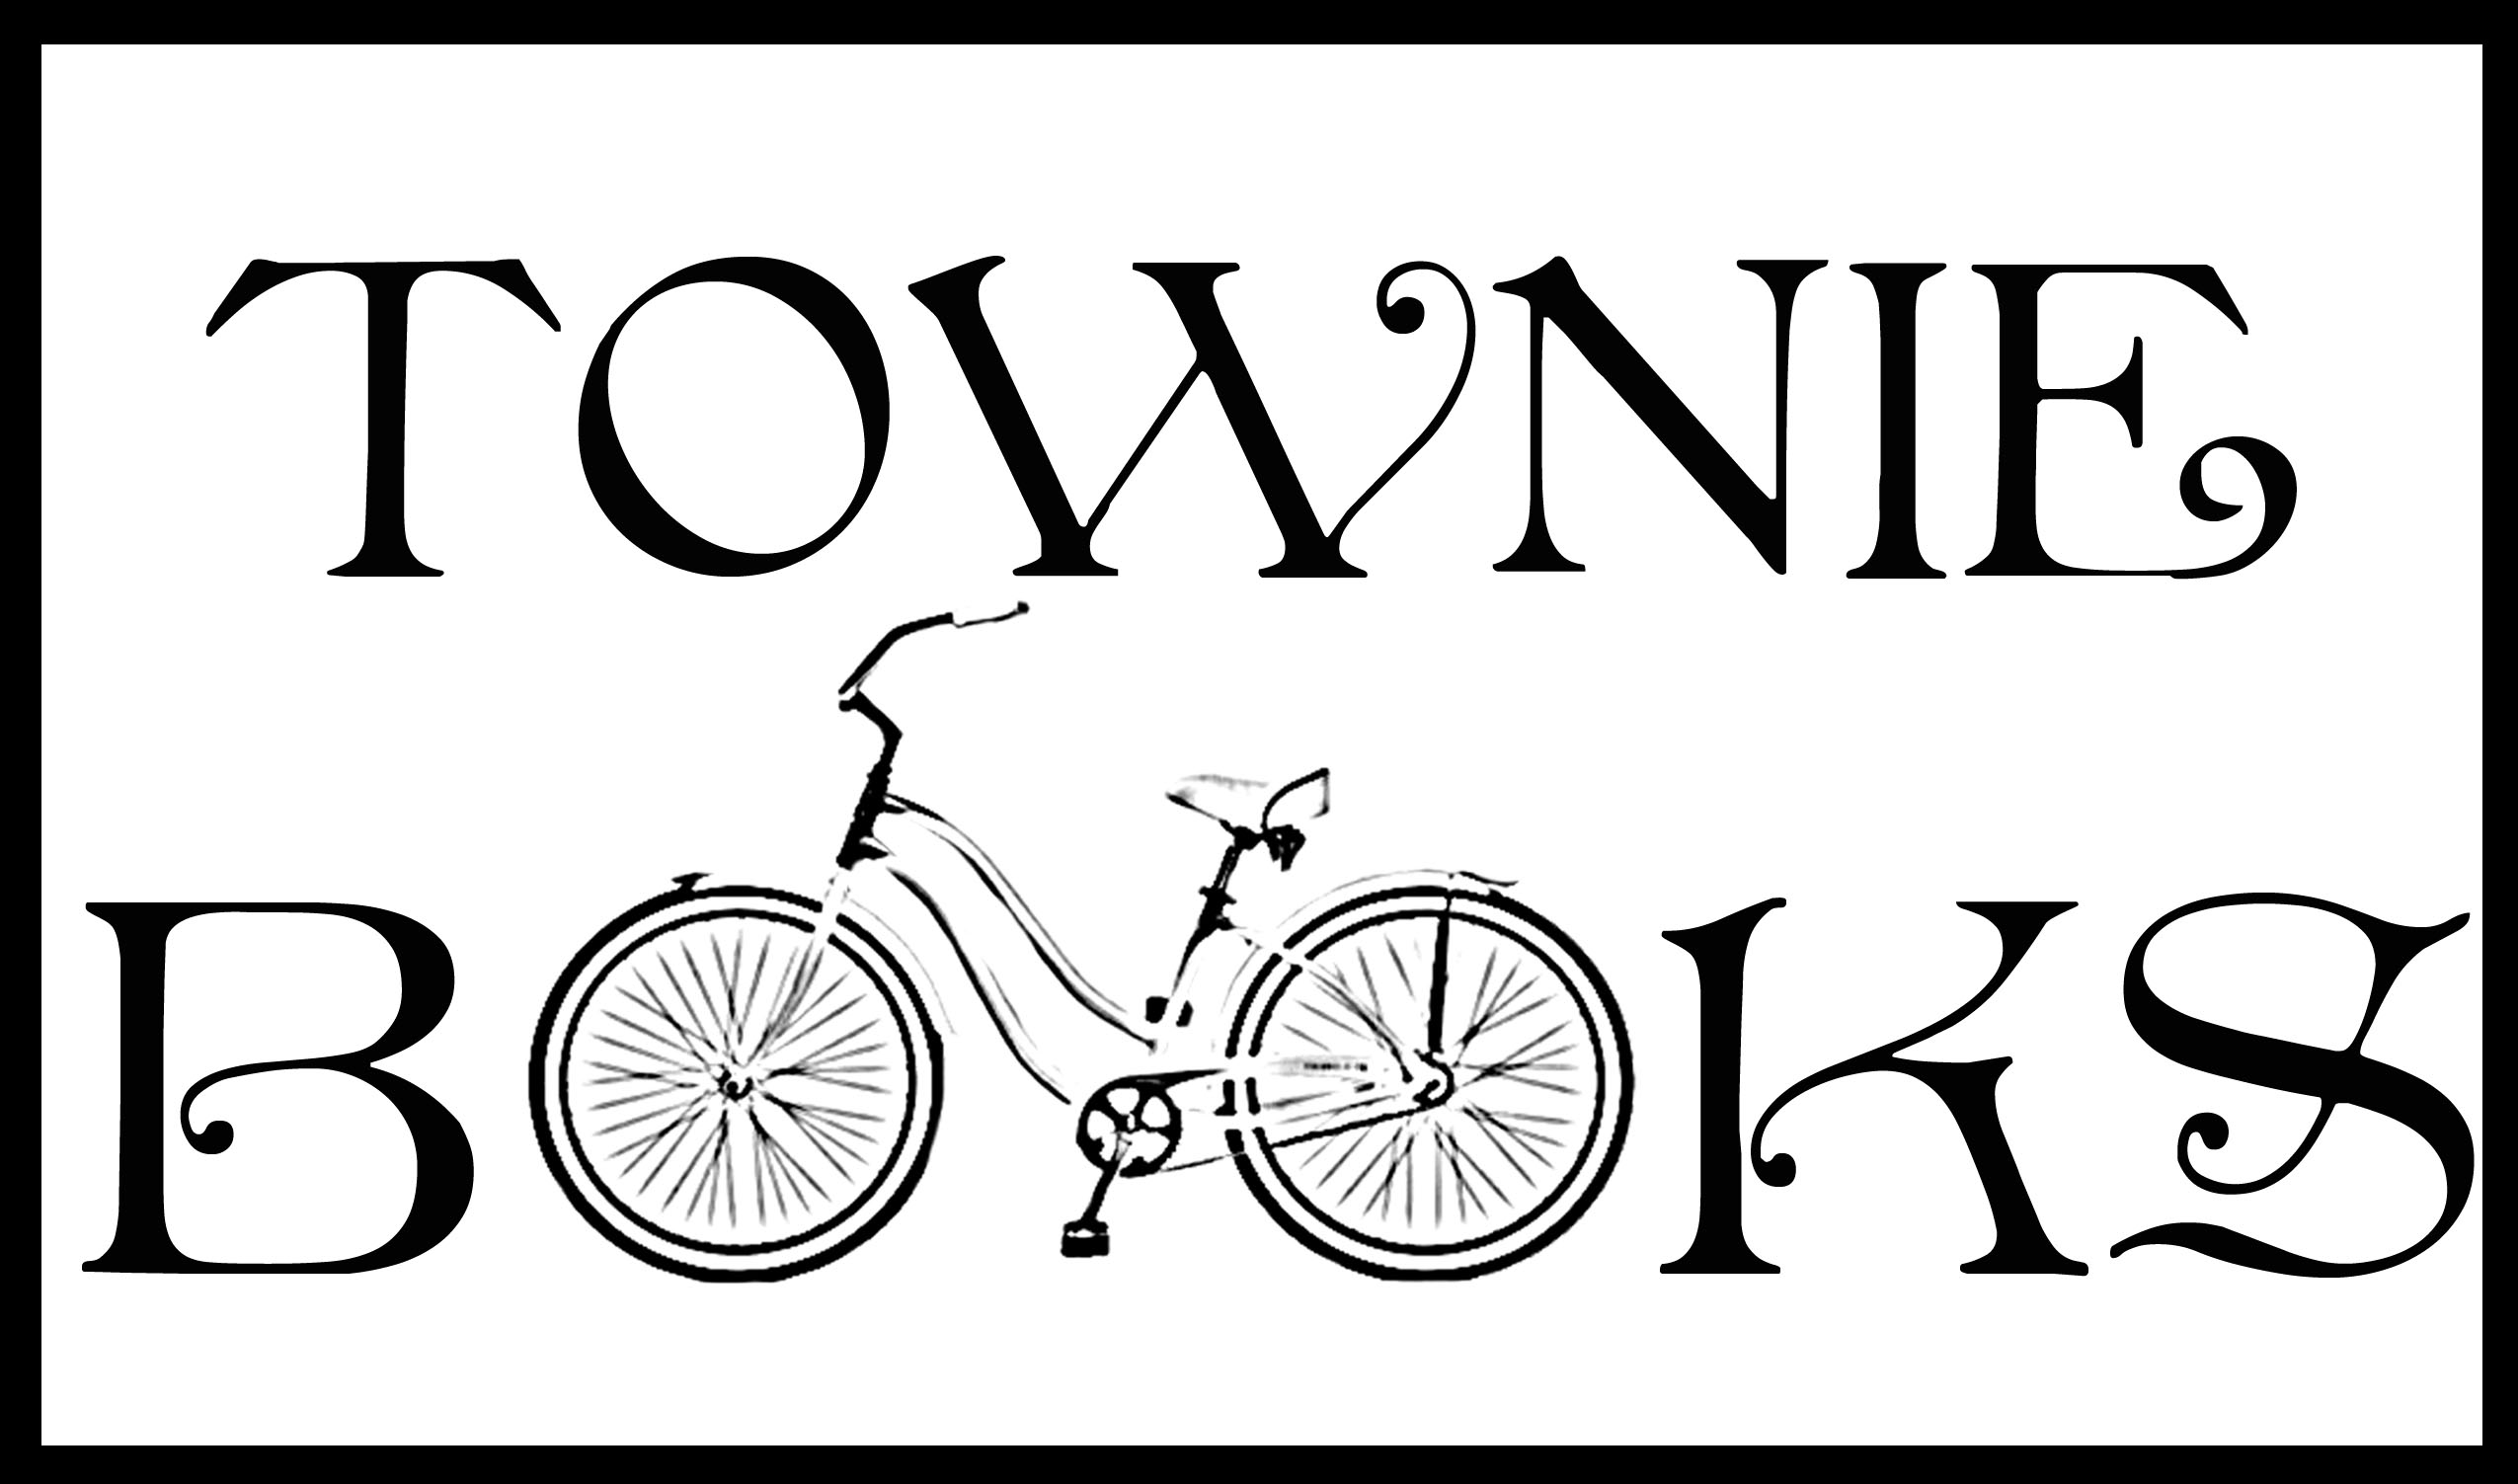 https://towniebookscb.indielite.org/